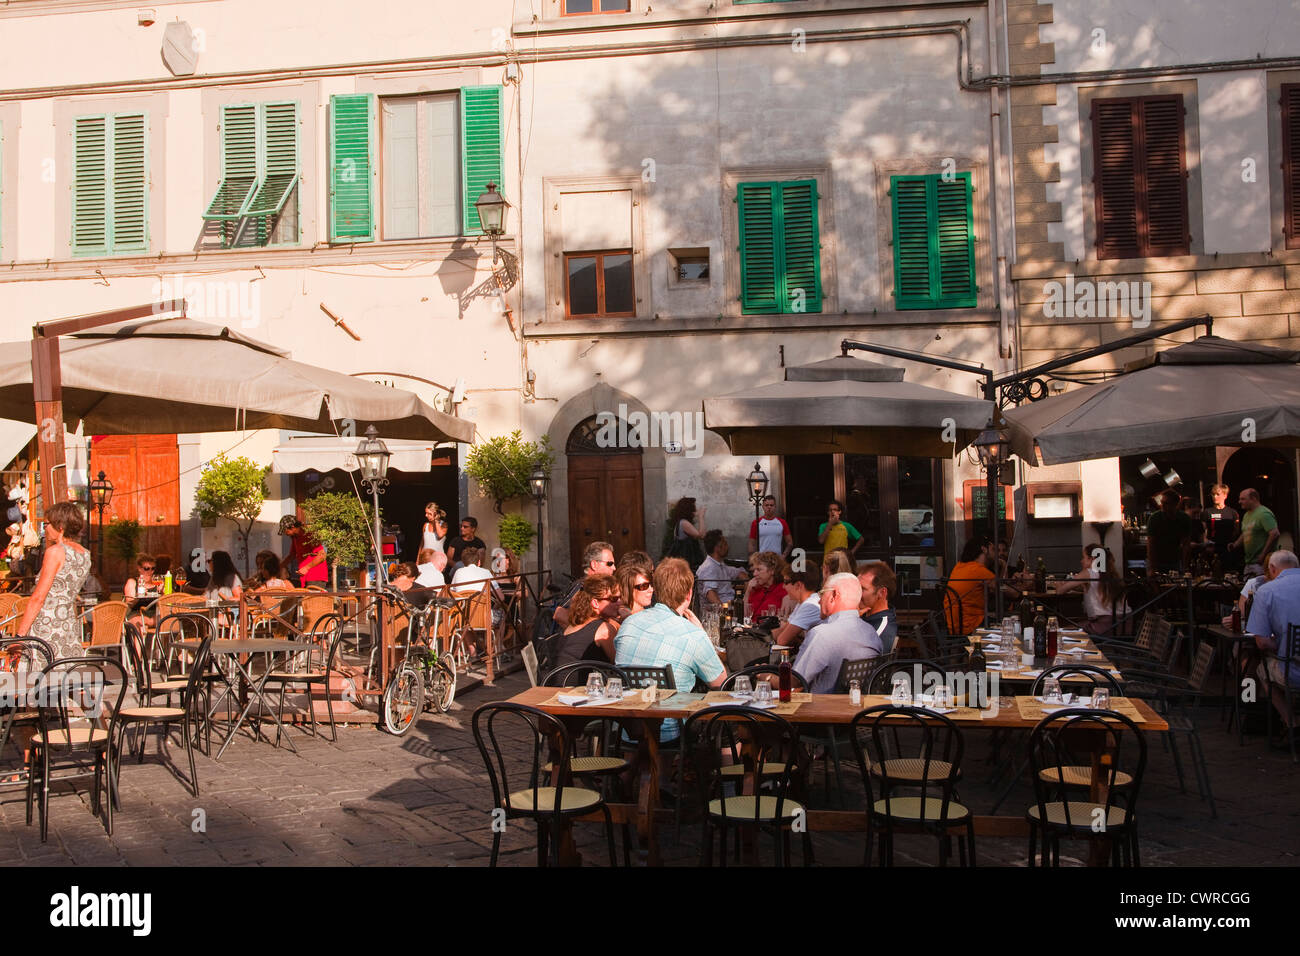 People eating at a restaurant in Piazza santo Sprito in Florence, Italy. - Stock Image